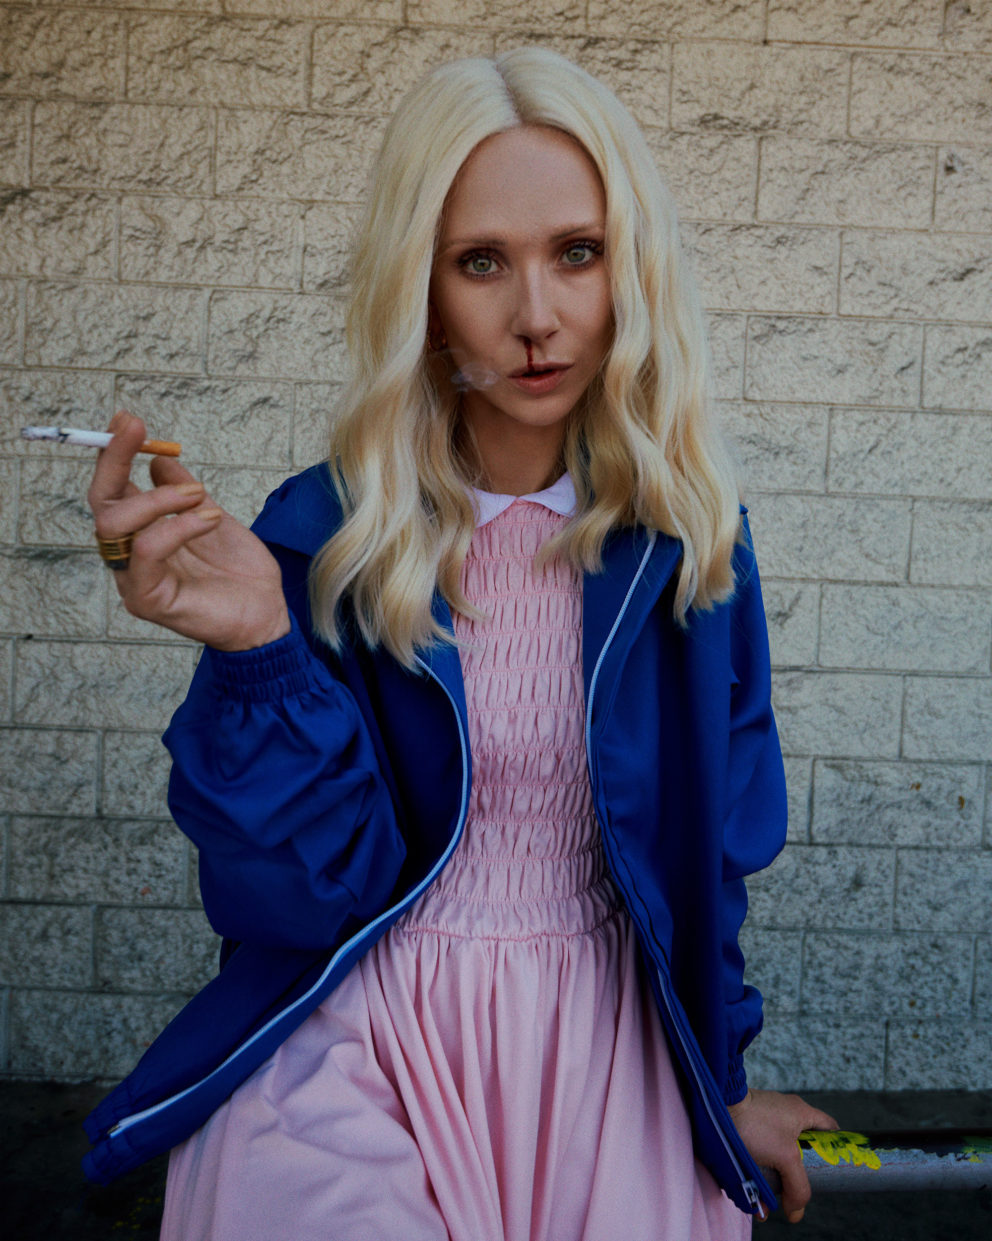 210709 999 Nd850 Wmag Tv Portfolio Juno Temple 196 By Christian Hogstedt